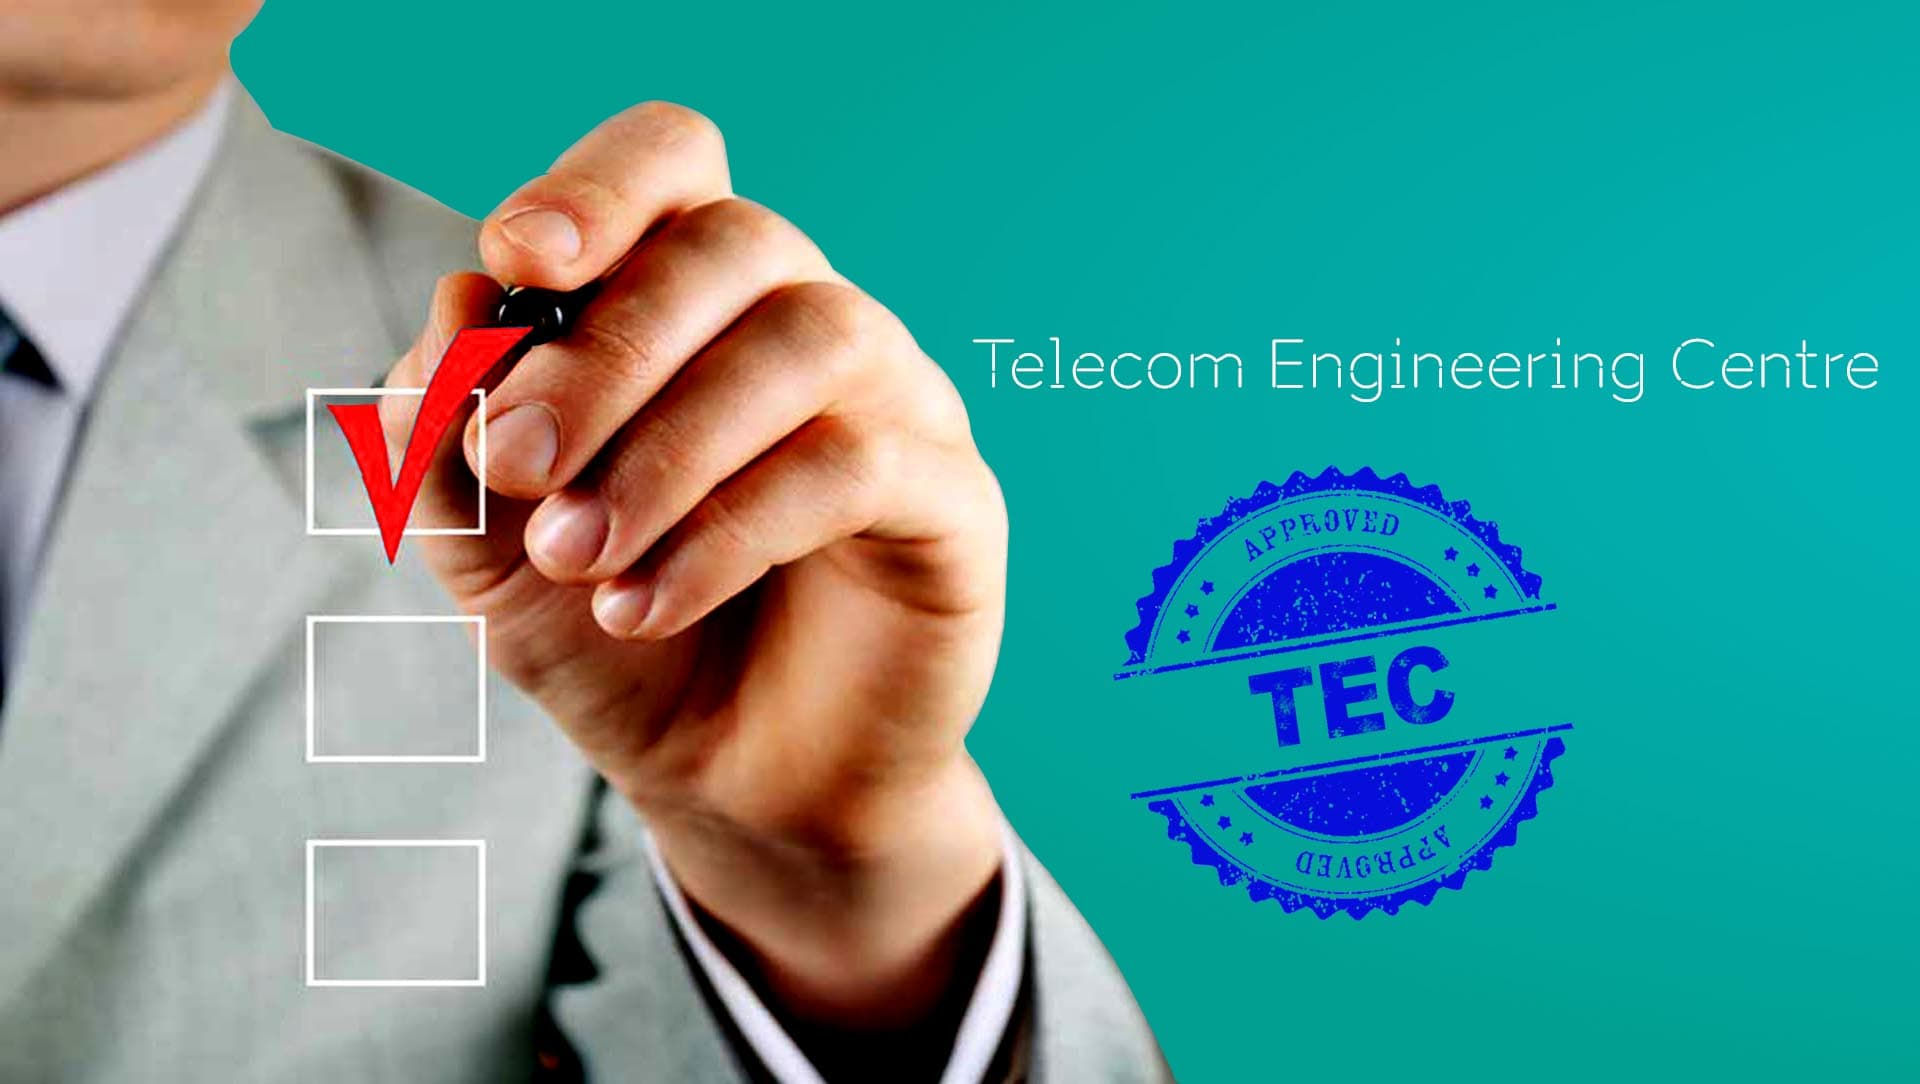 TEC(Telecom Engineering Centre) Mandatory Compliance of The Mobile Association